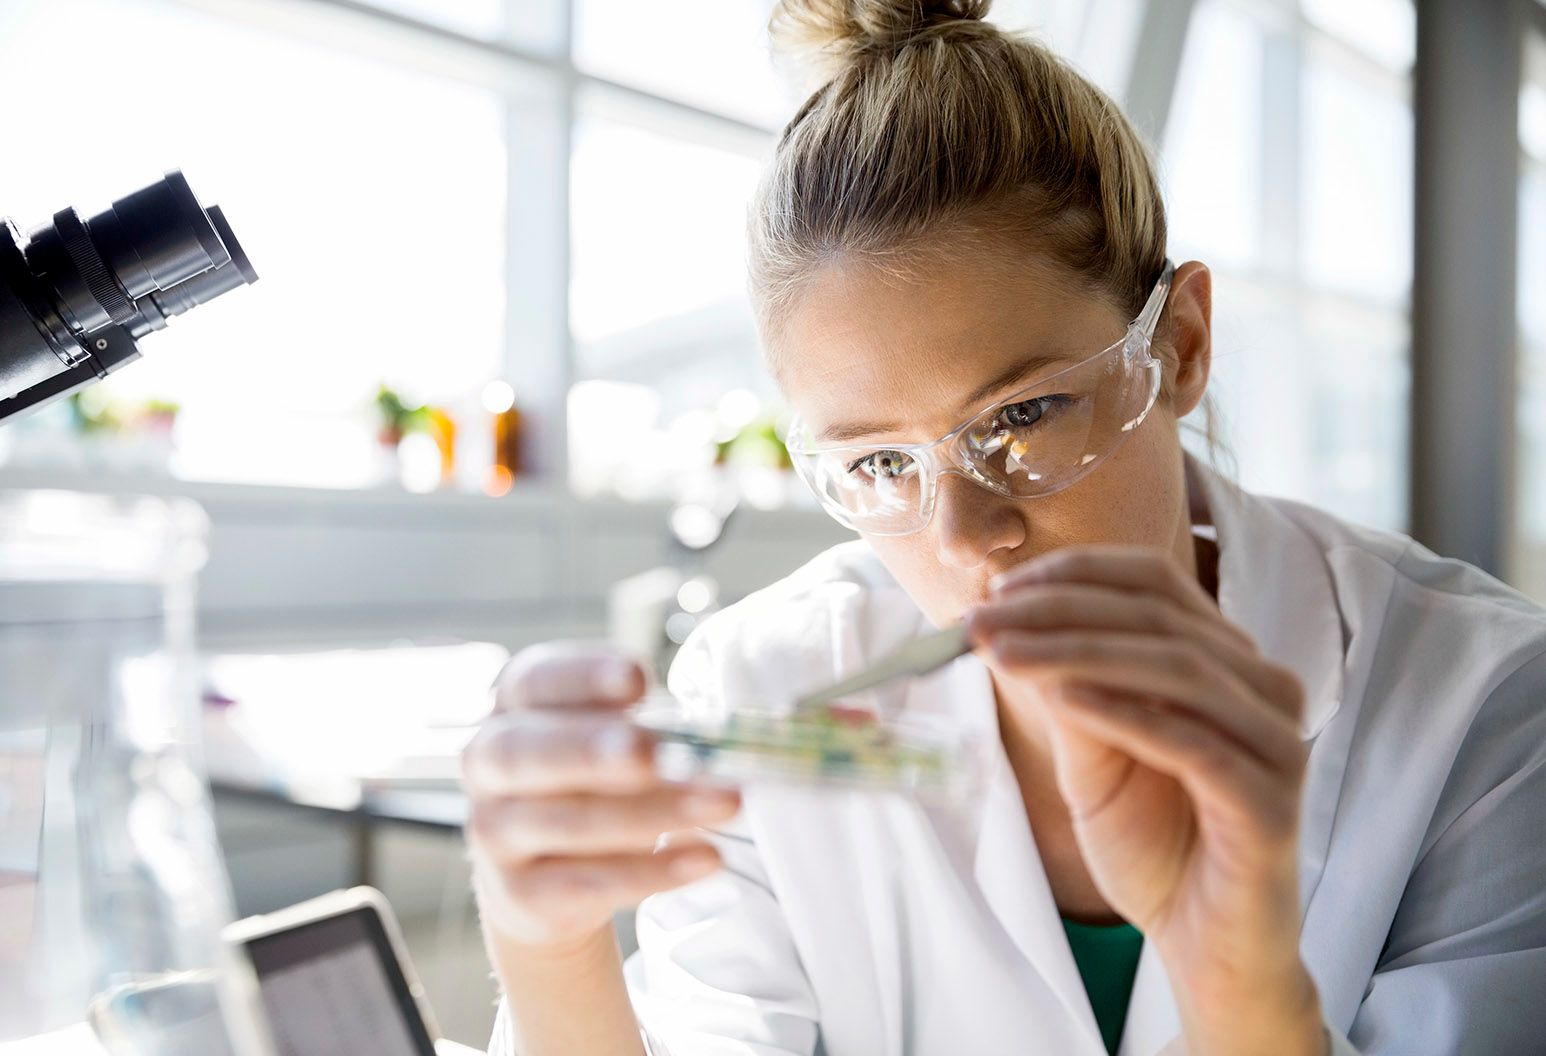 A female scientist with dirty blonde hair wearing a white lab coat and medical glasses examines contents in a dish